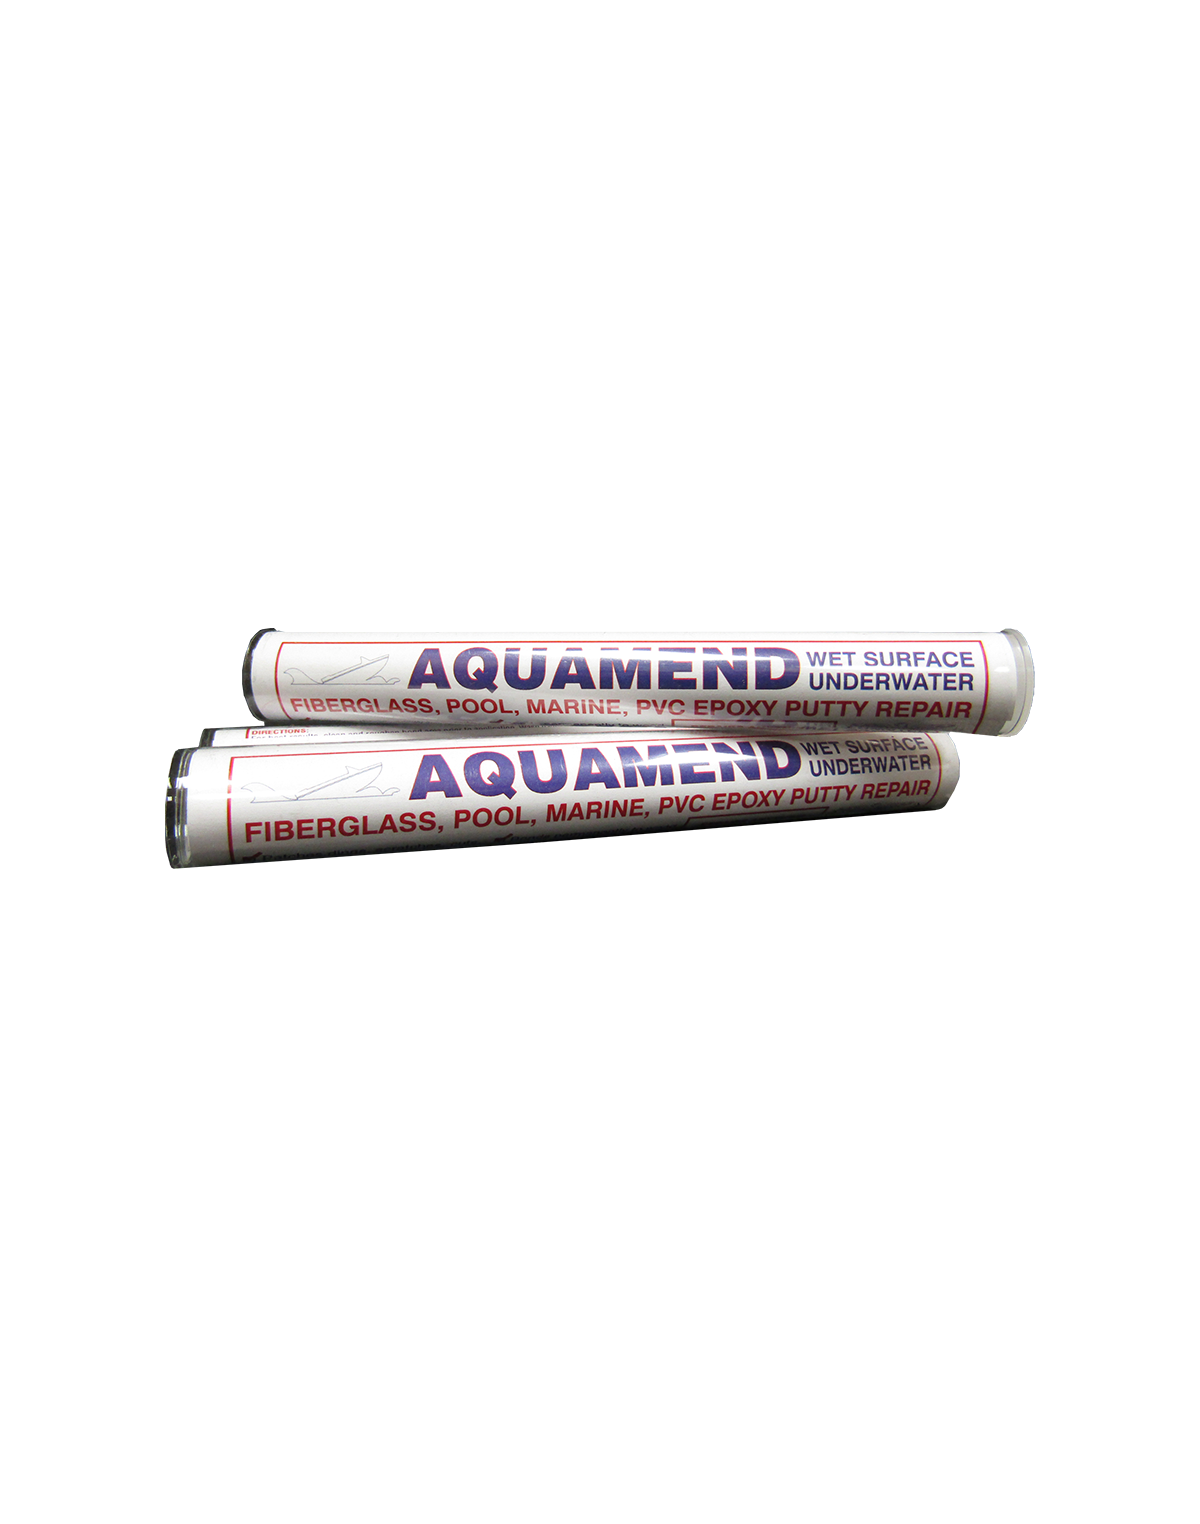 Aquamend Product - Nationwide Protective Coatings